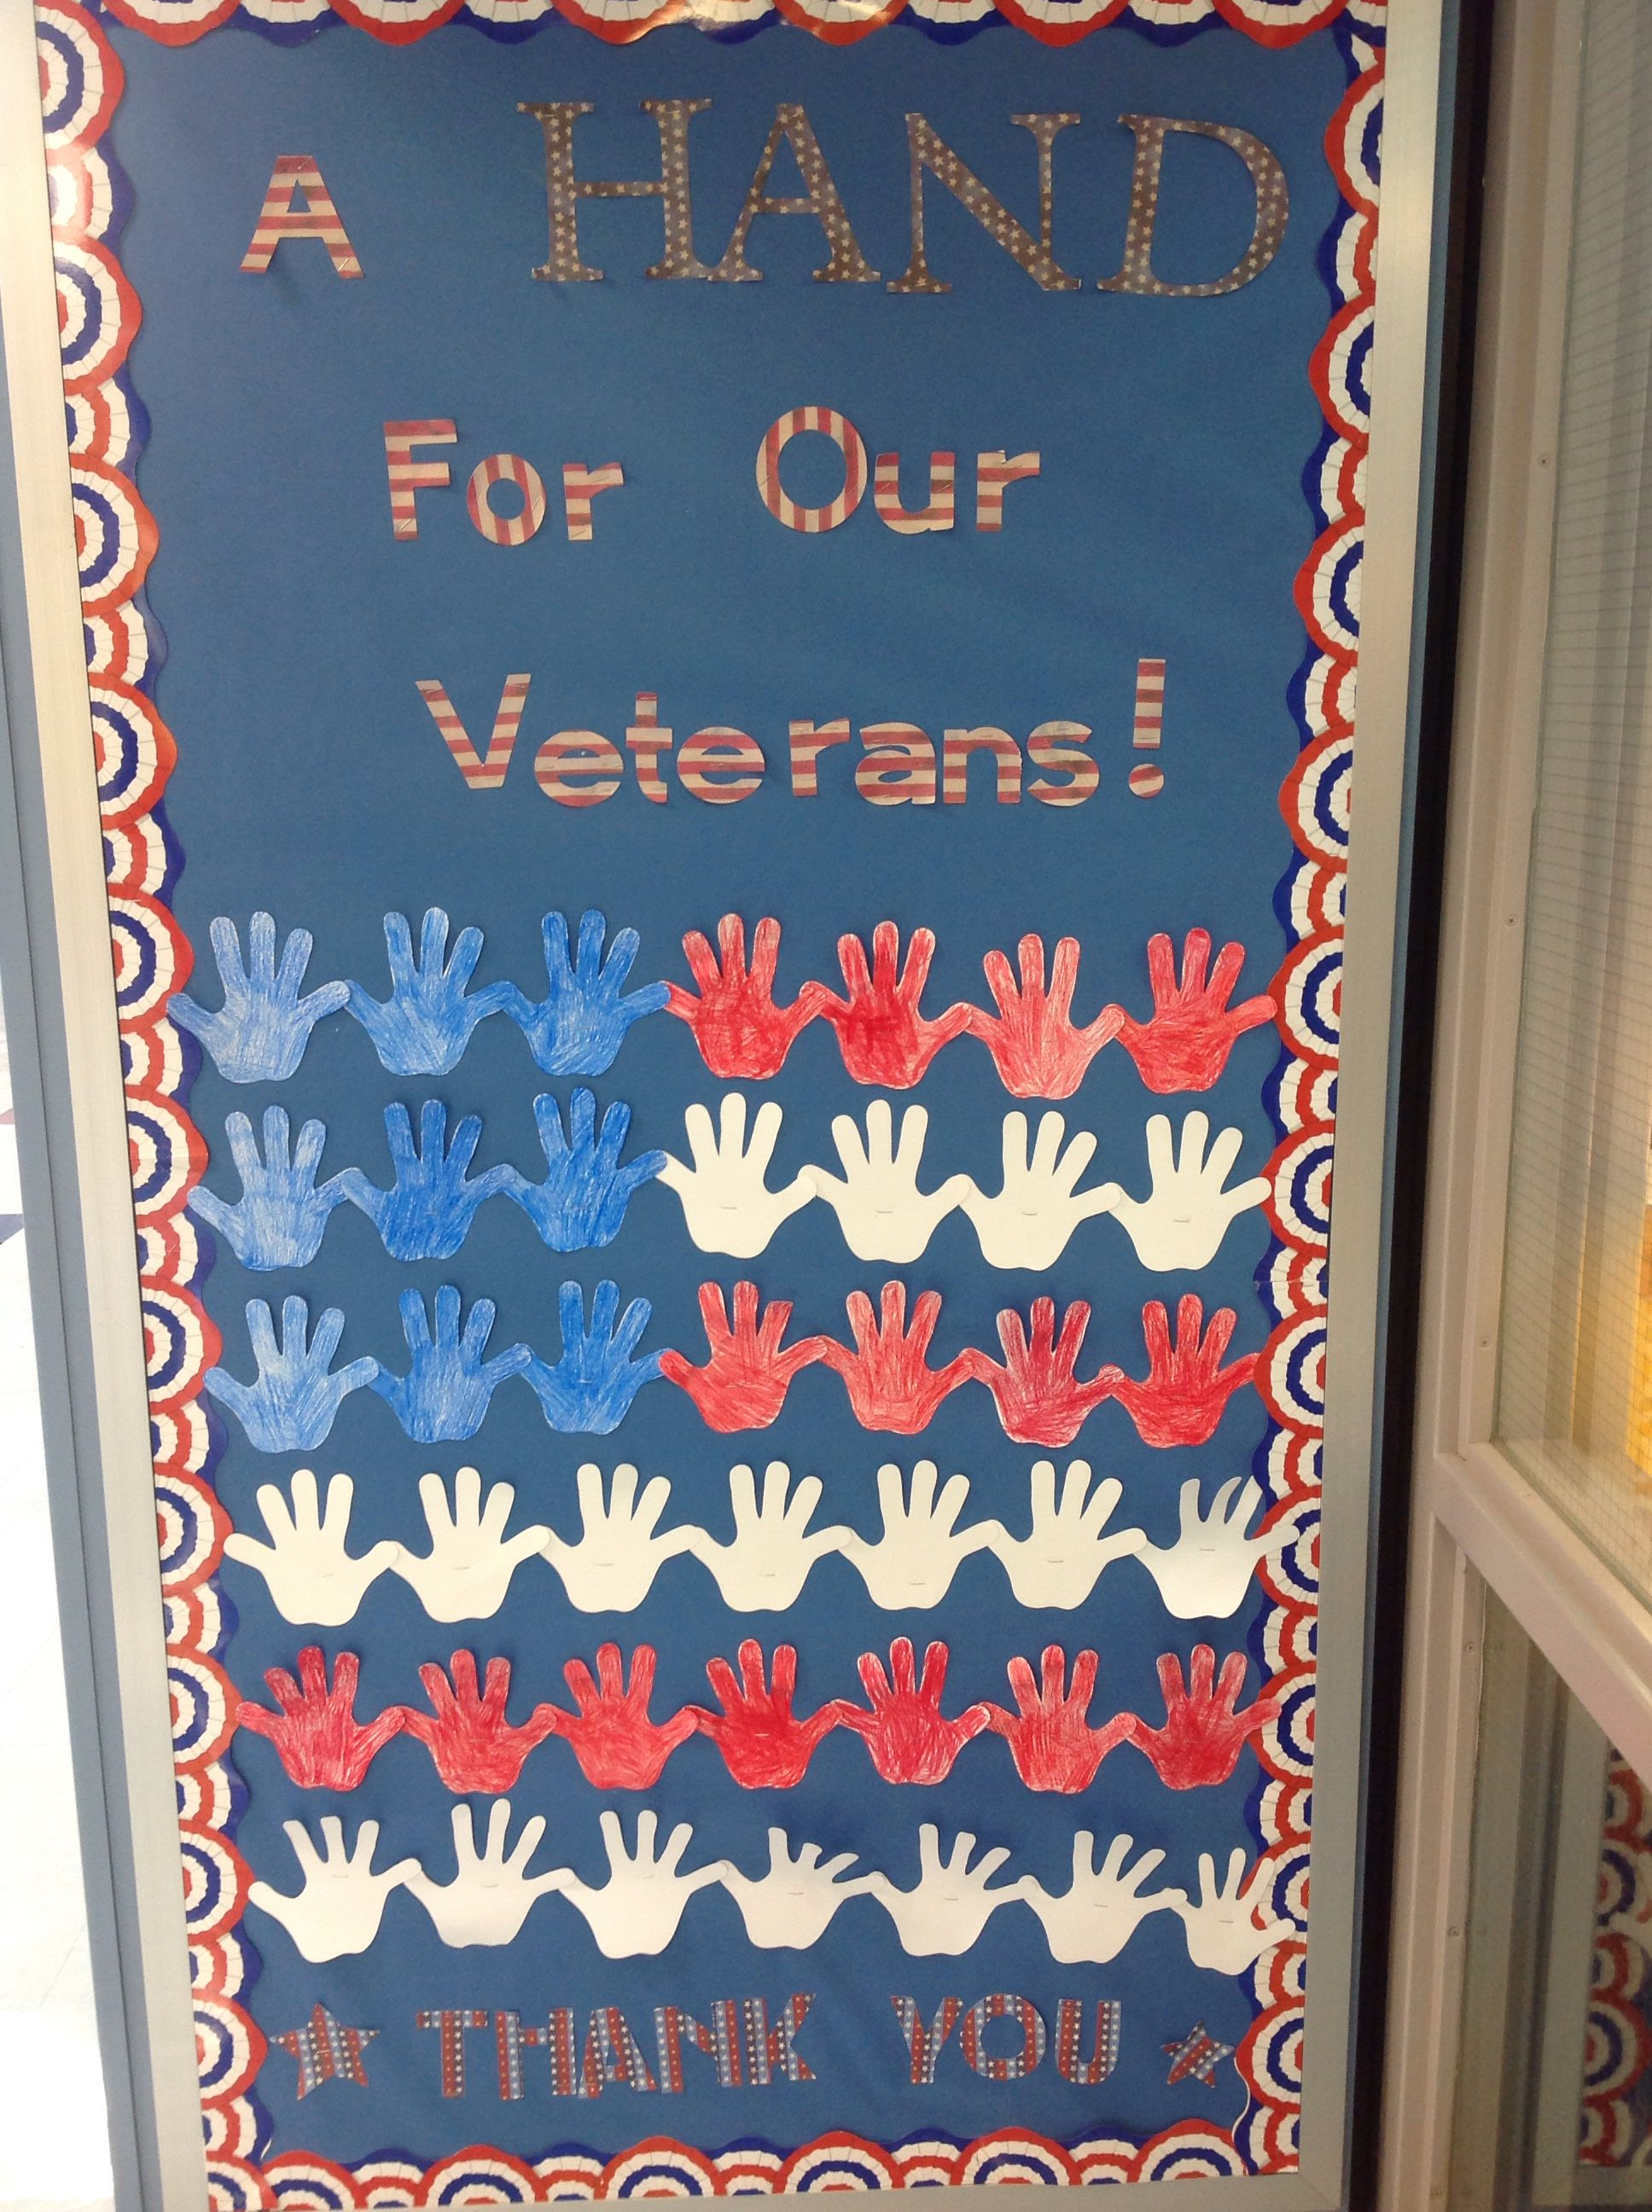 surprising Thank You Board Ideas Part - 18: Veterans Day Bulletin Board - A Hand For Our Veterans! Thank You